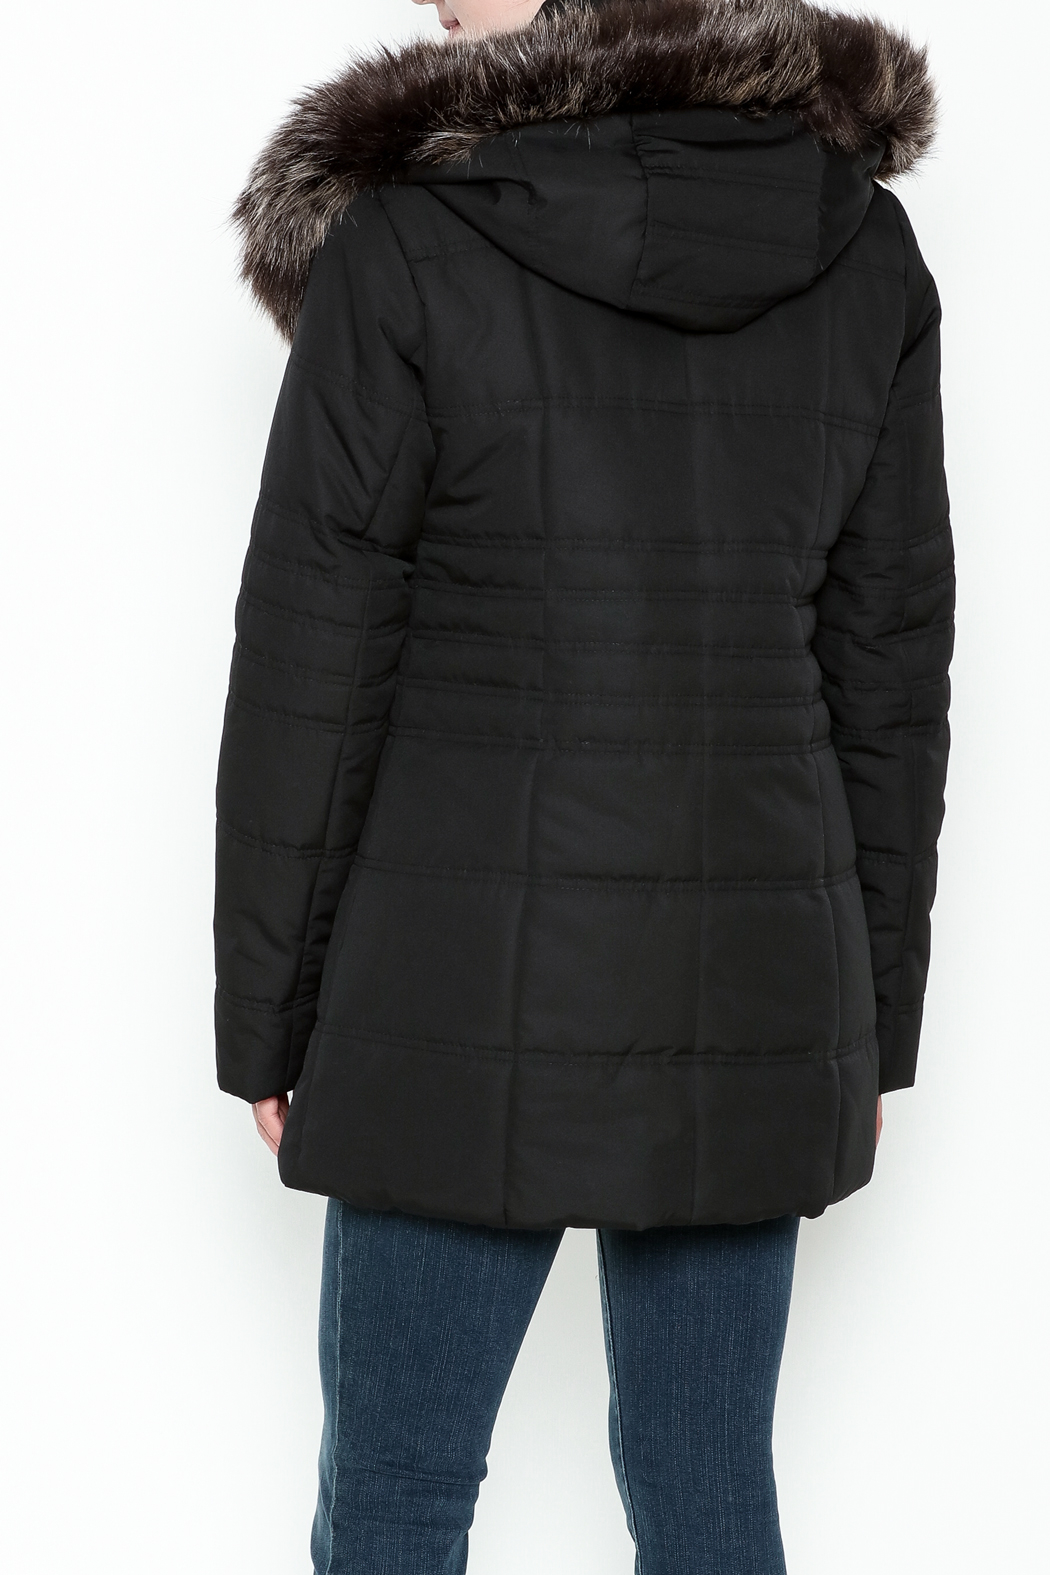 Capital Garment Quilted Coat - Back Cropped Image